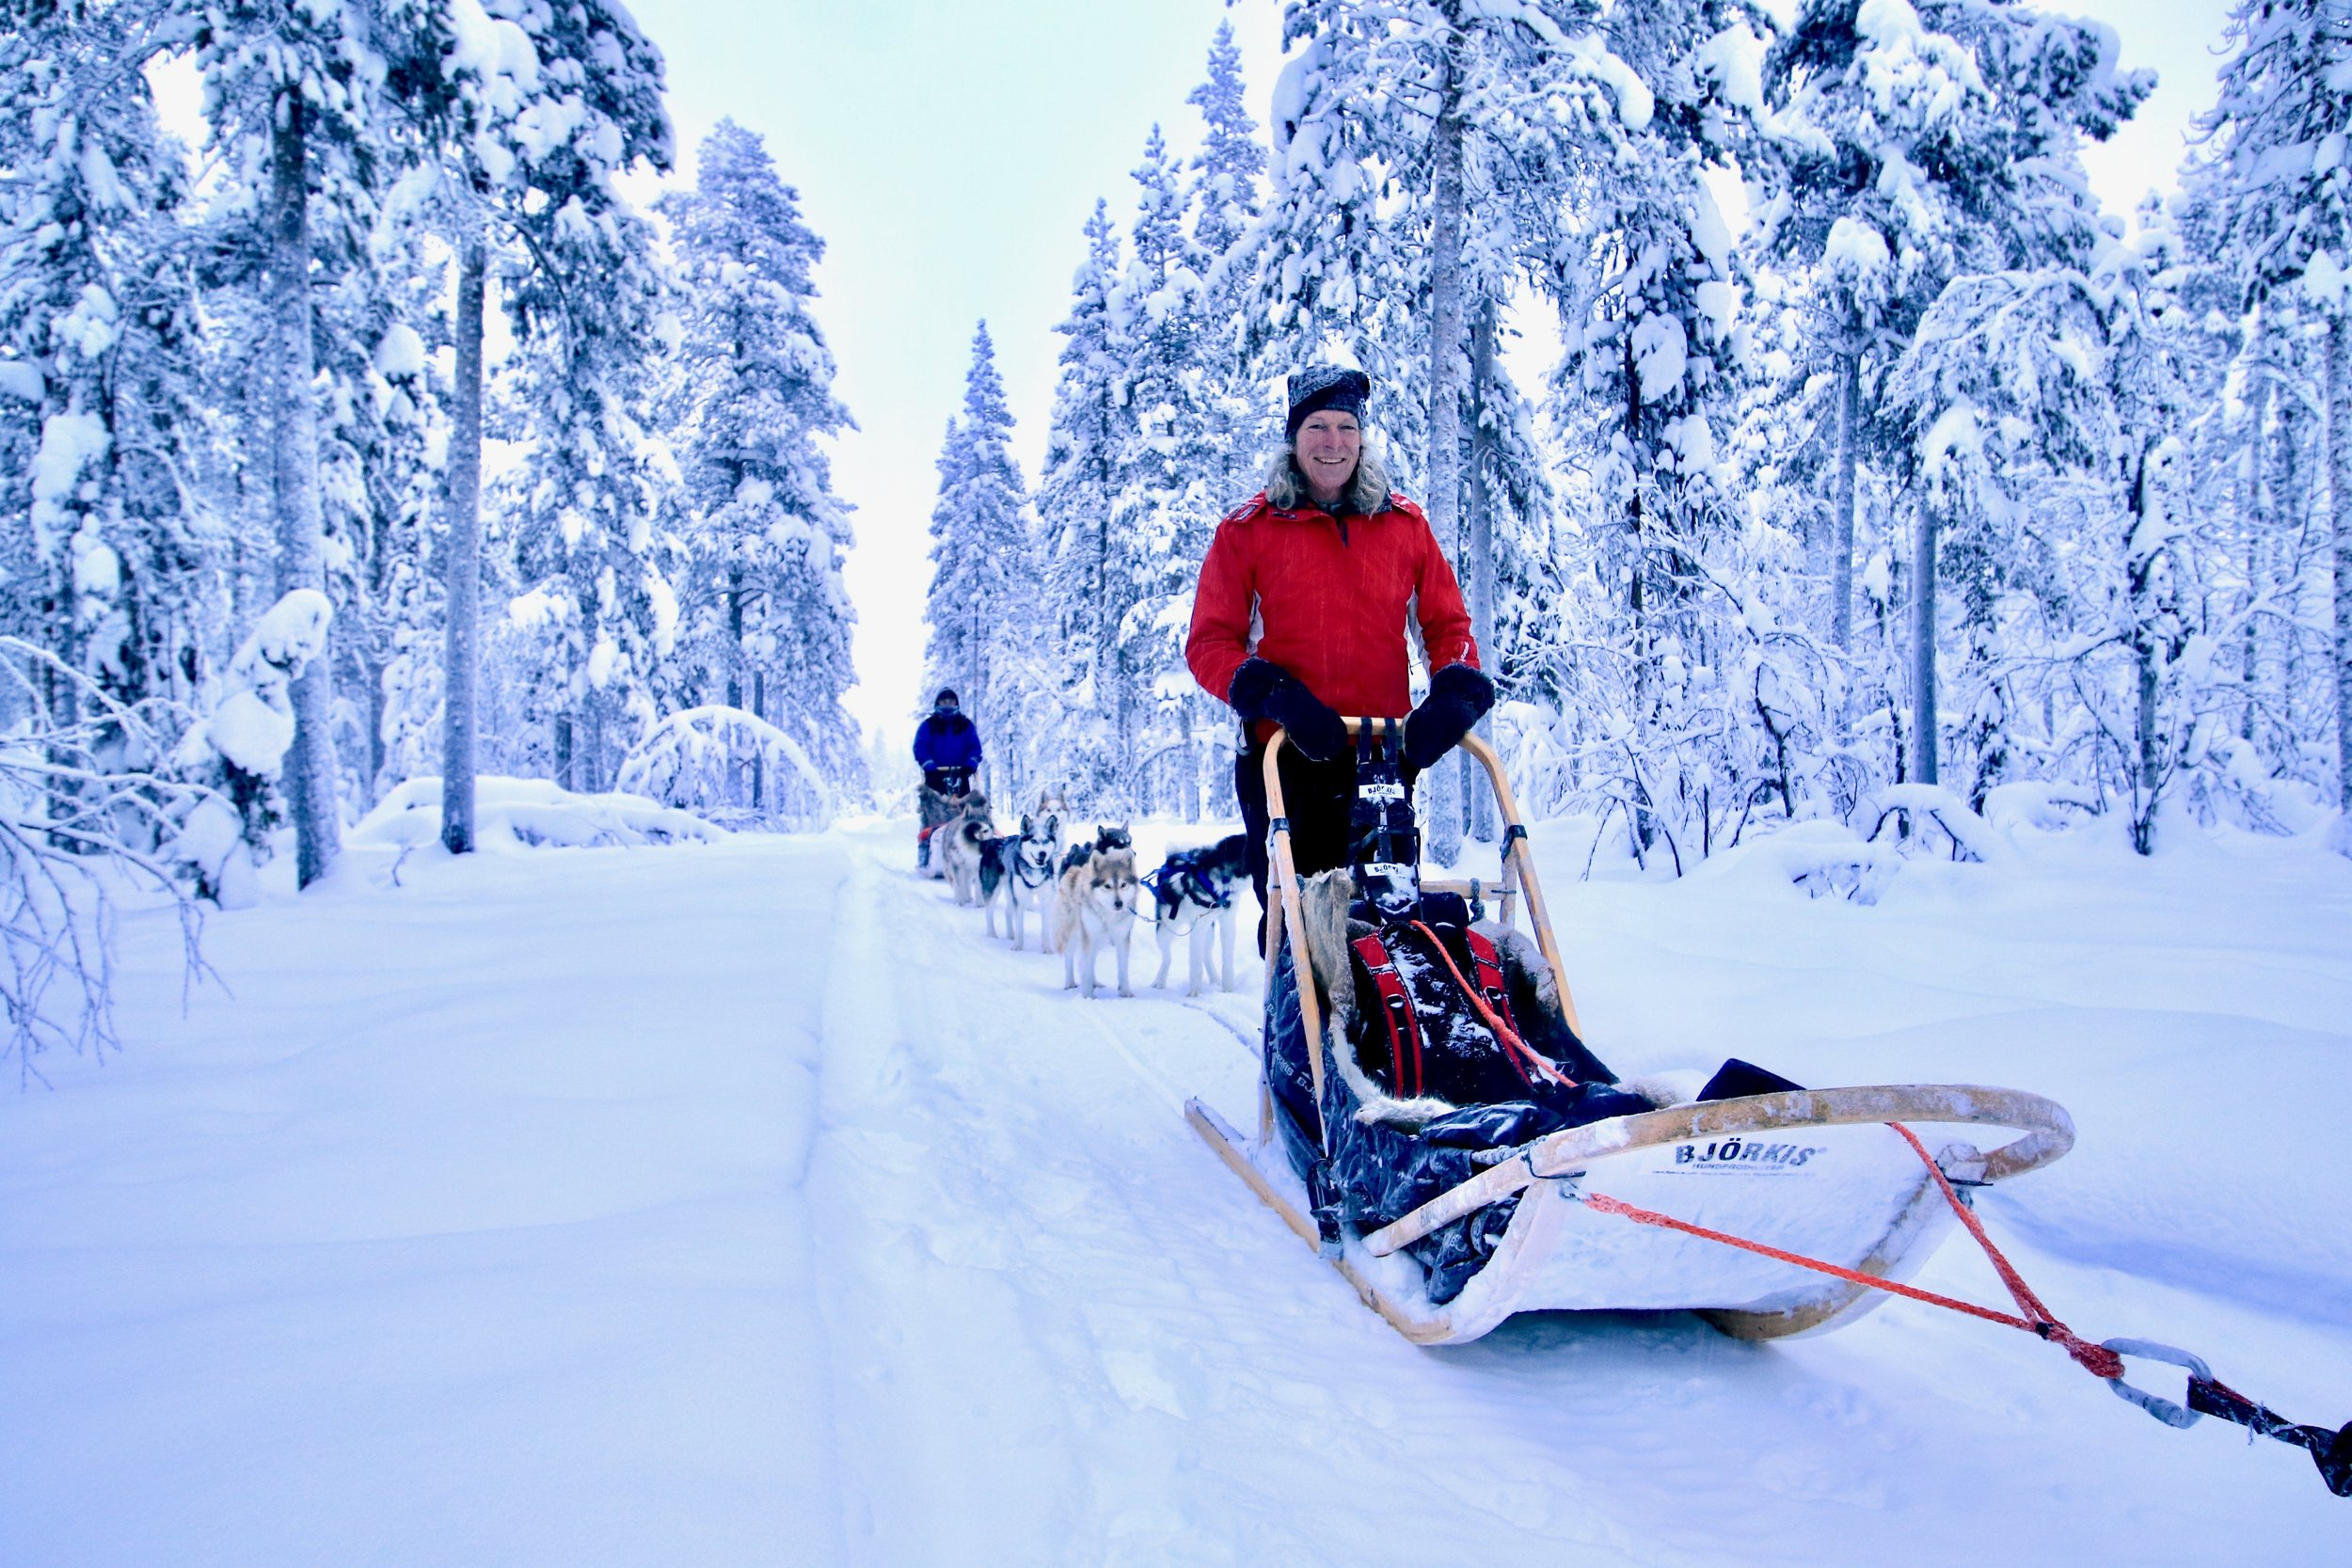 5-days Husky Experience Pure Sensations - Go for a unique trip in north, in the middle of Lapland, the northernmost part of Sweden. Polar winter is a magical spectacle with endless nights lit by the stars and the white of the snow reflecting the pastel colors of the northern lights.